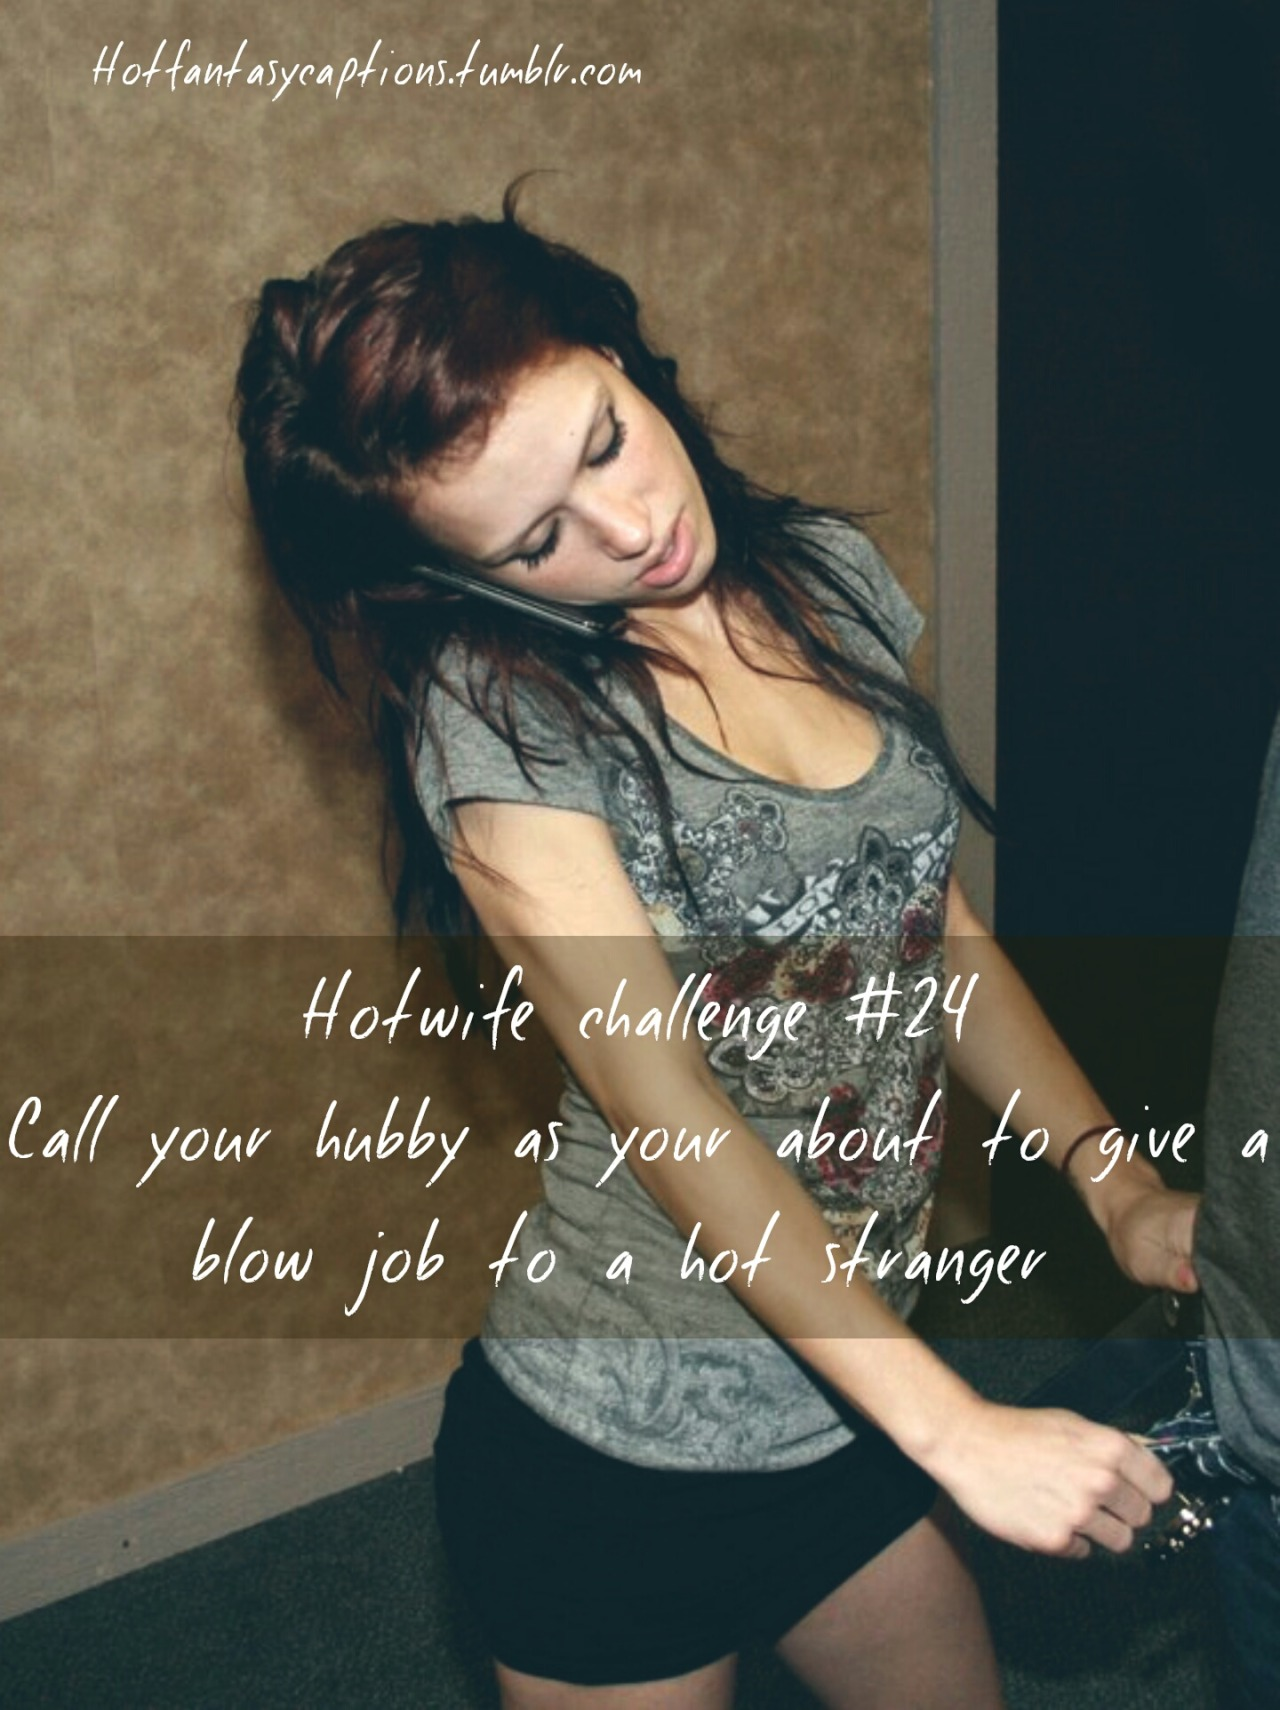 Hotfantasycaptions.tumblr.com Hotwife challenge #24Call your hubby as you're about to give a blow job to a hot stranger